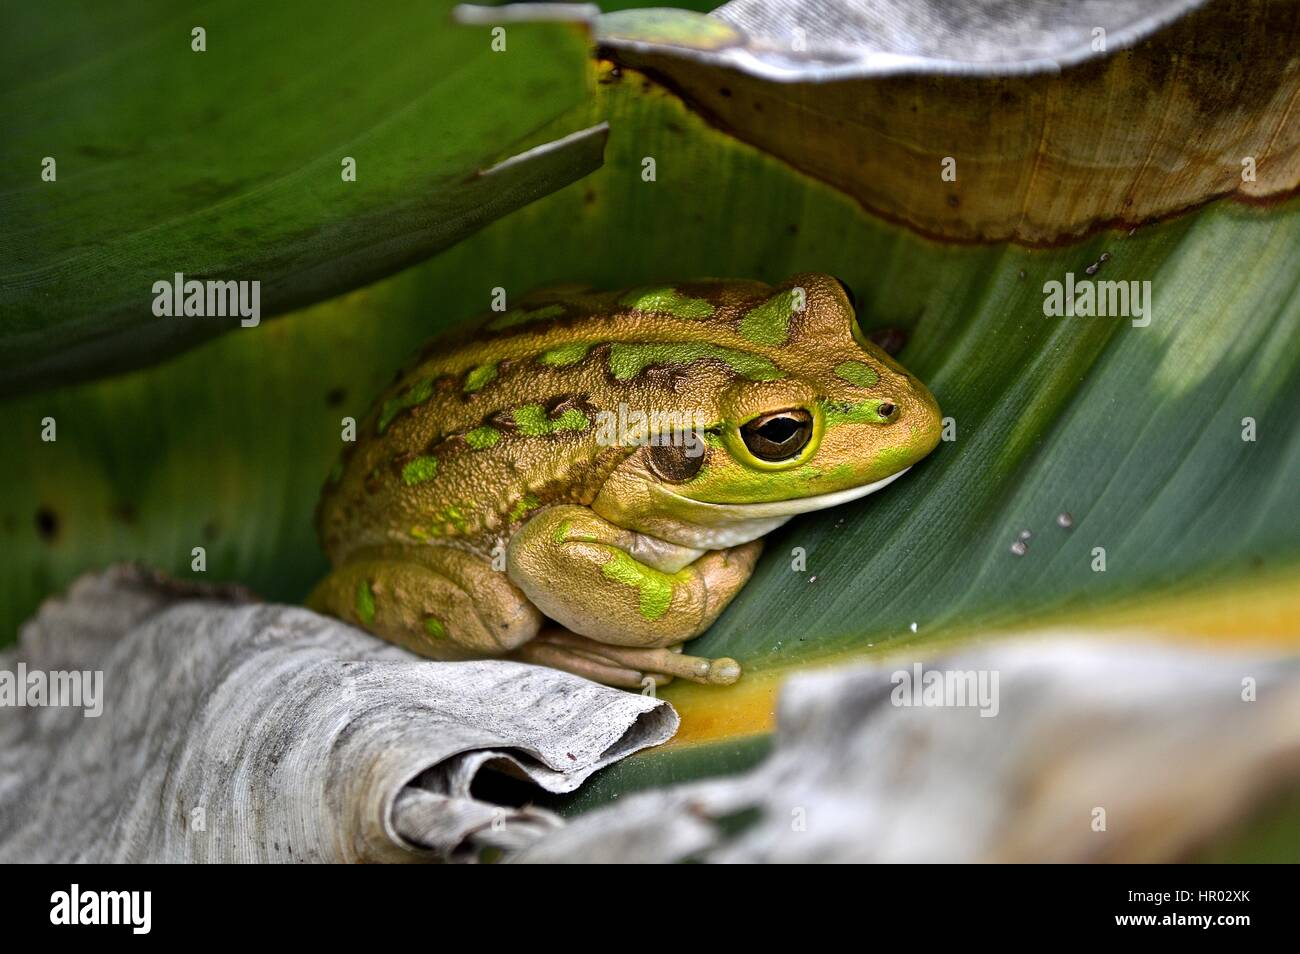 golden and green motorbike frog on a leaf - Stock Image